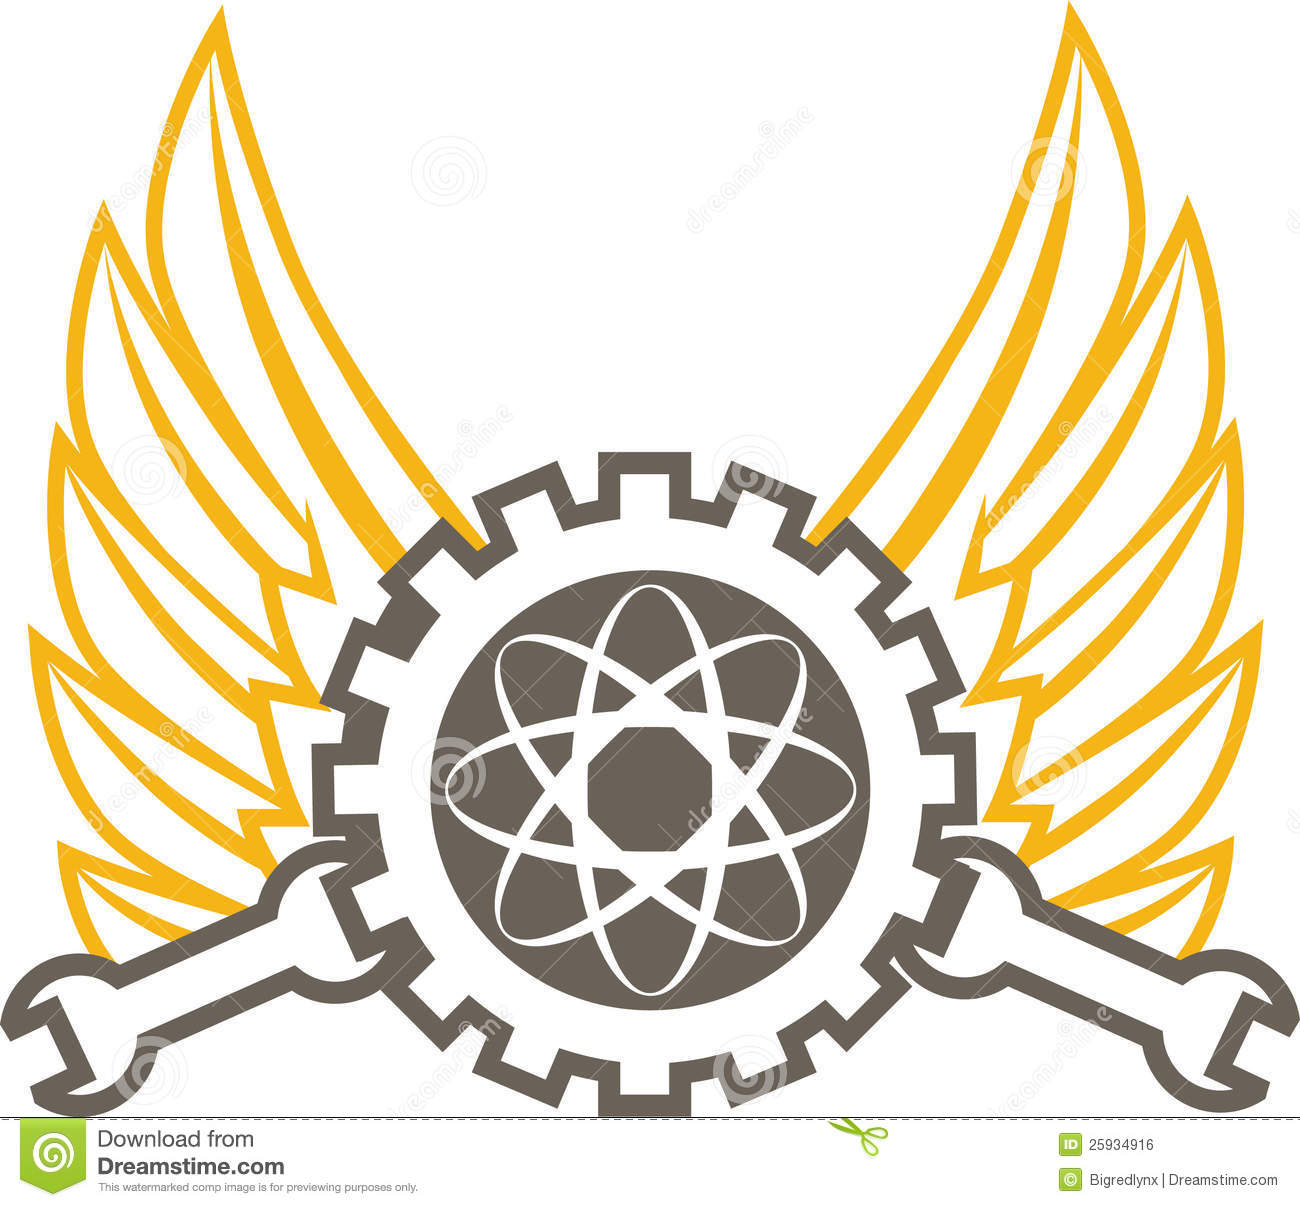 Engineering Emblem Royalty Free Stock Image - Image: 25934916